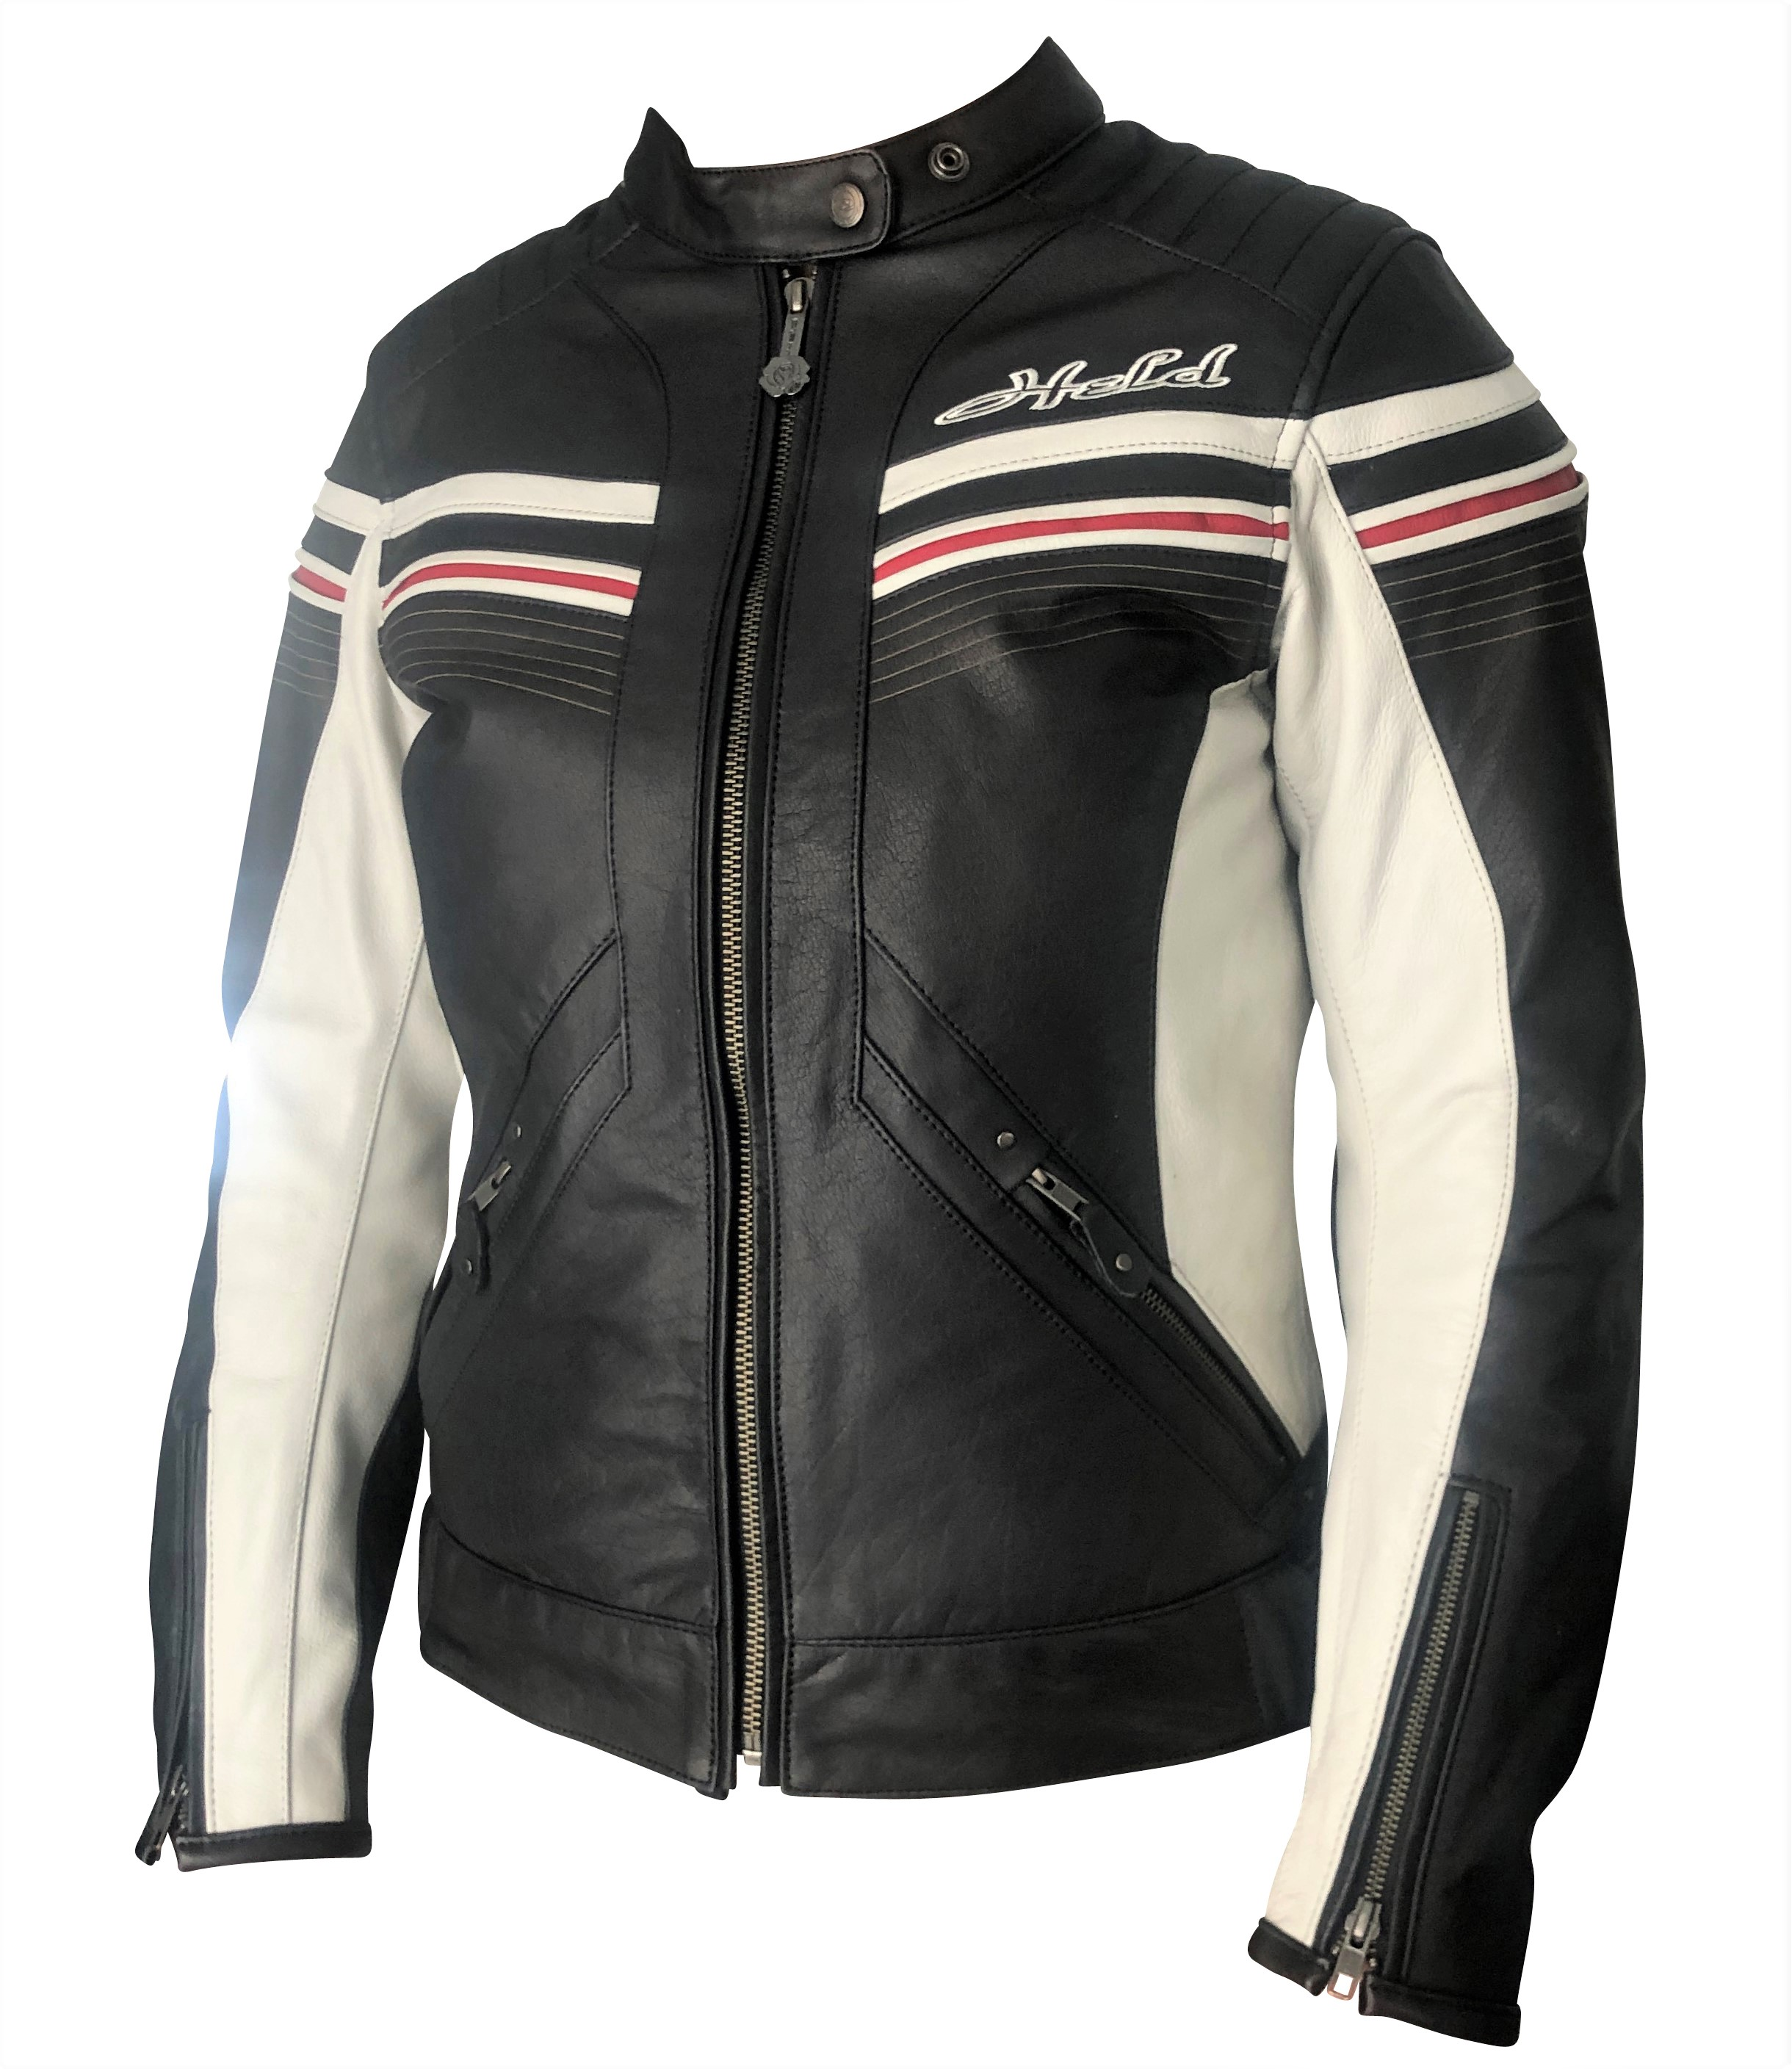 held street ii damen lederjacke motorradjacke gr 36 34. Black Bedroom Furniture Sets. Home Design Ideas